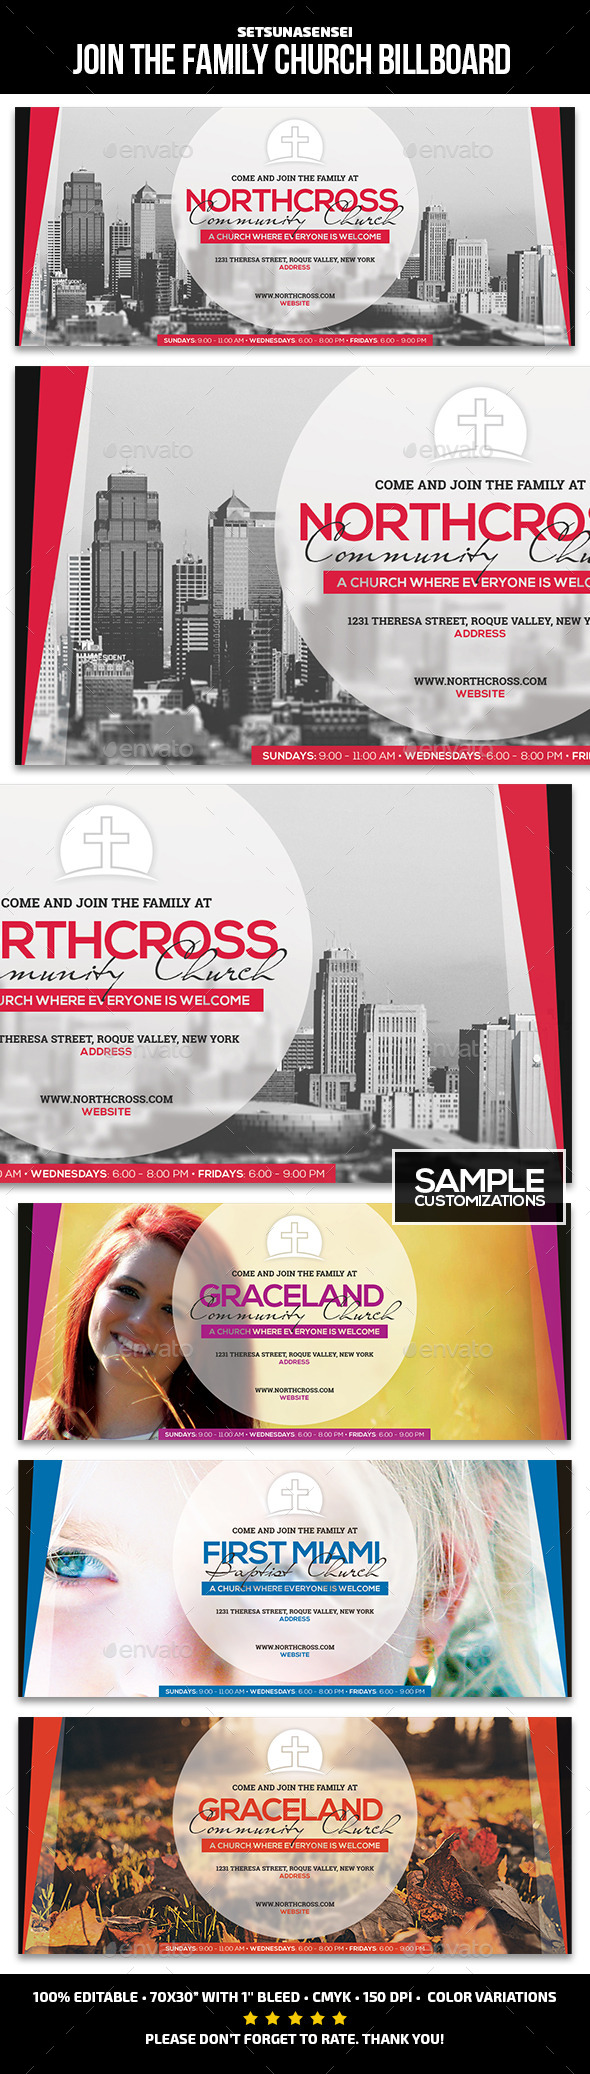 GraphicRiver Join the Family Church Billboard 9696247